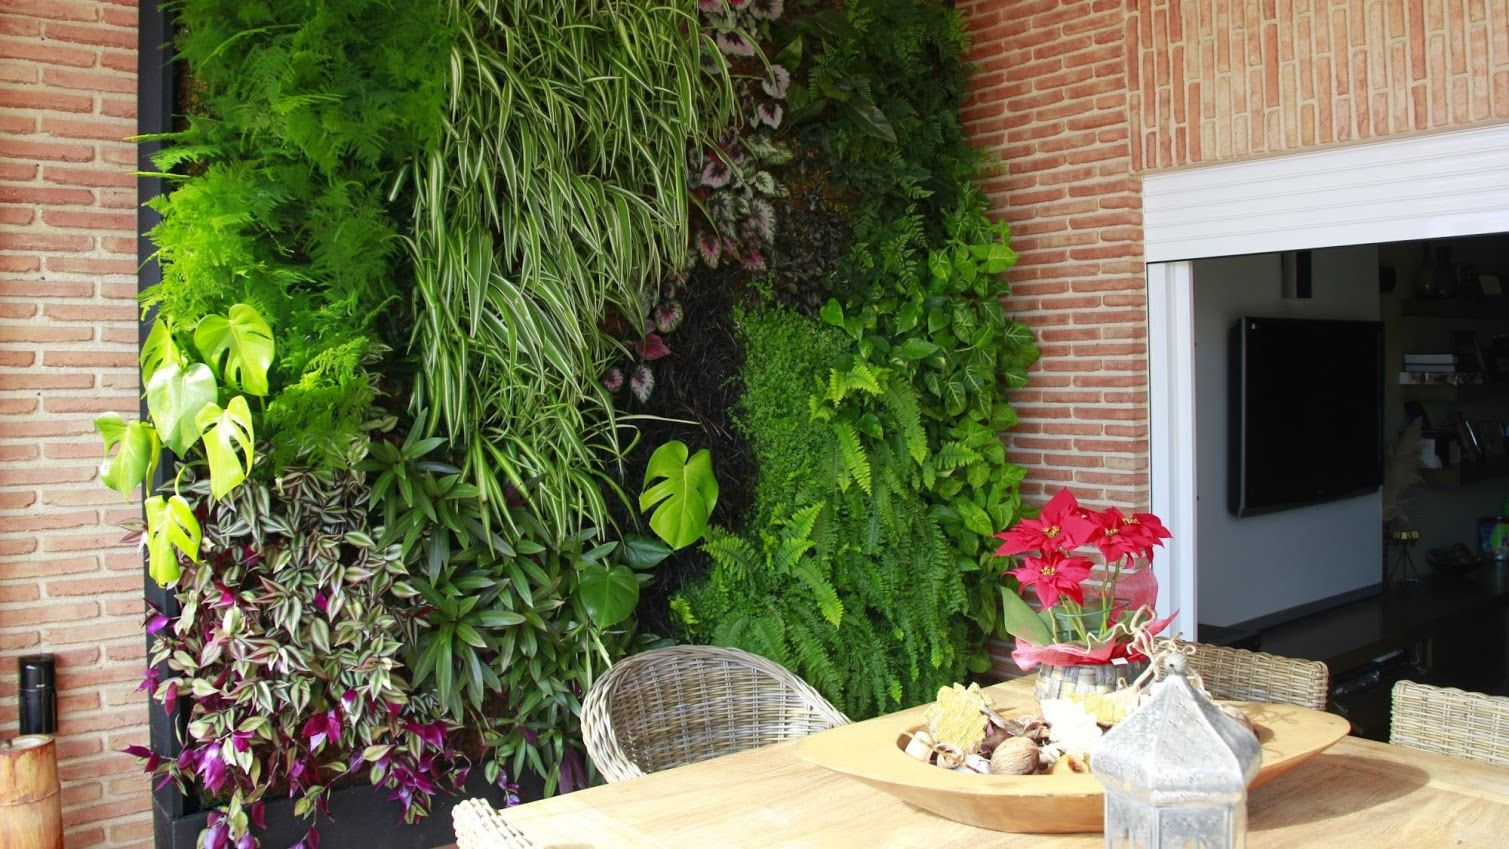 Jard n vertical interior jardines verticales interiores for Jardin vertical interior